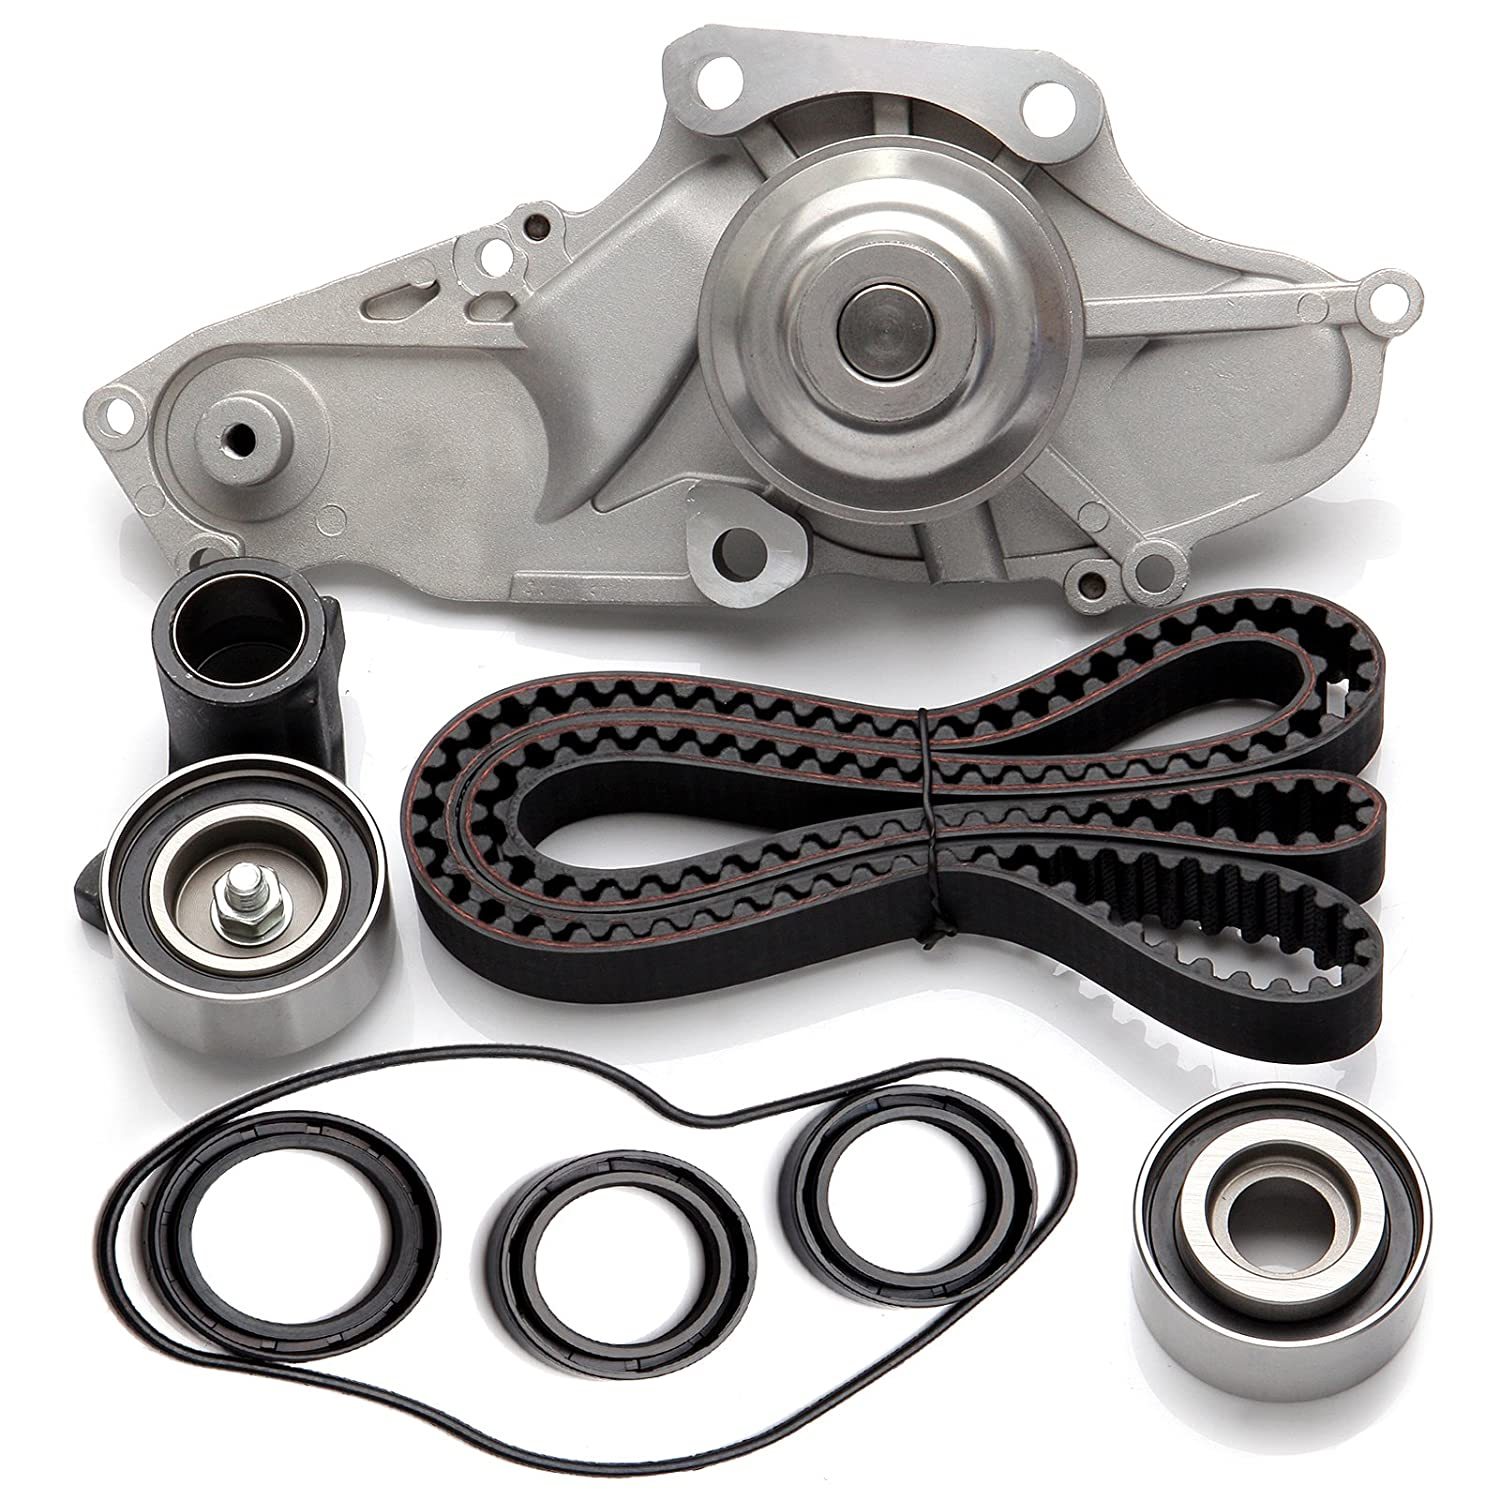 ... Timing Belt Kit Including Timing Belt Water Pump with Gasket tensioner  Bearing etc, Compatible for 2003 2004 2005 2006 2007 2008 2009 Acura MDX/2003  ...